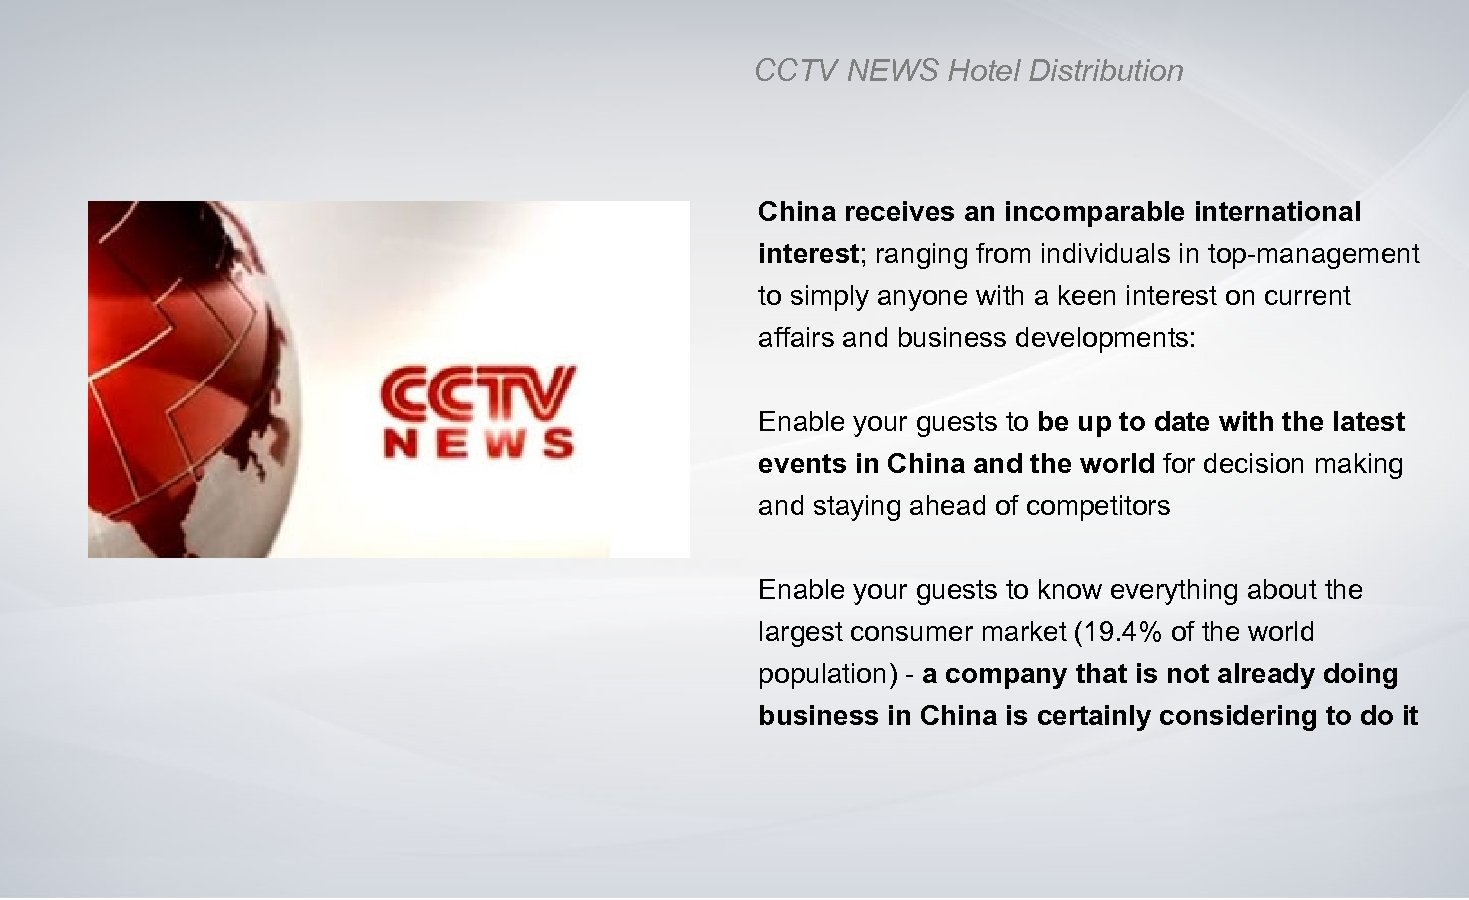 CCTV NEWS Hotel Distribution China receives an incomparable international interest; ranging from individuals in